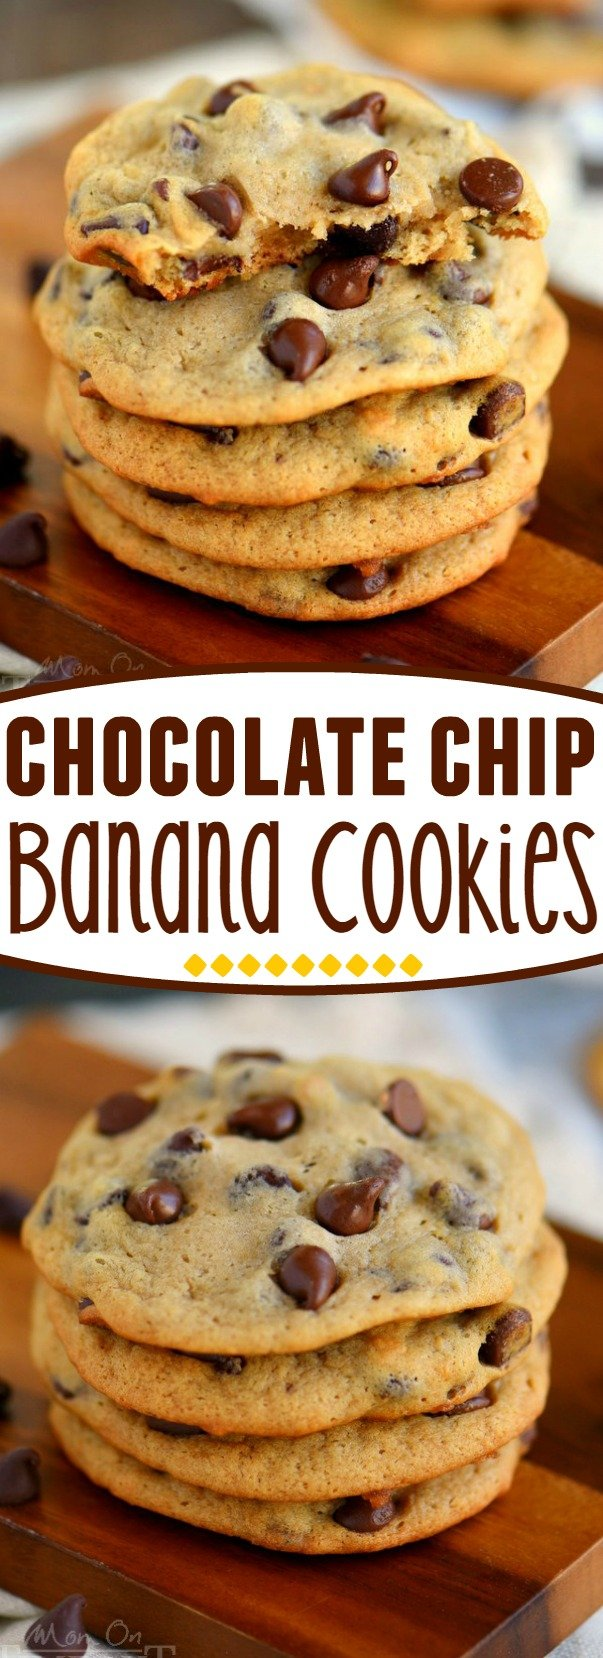 chocolate-chip-banana-cookies